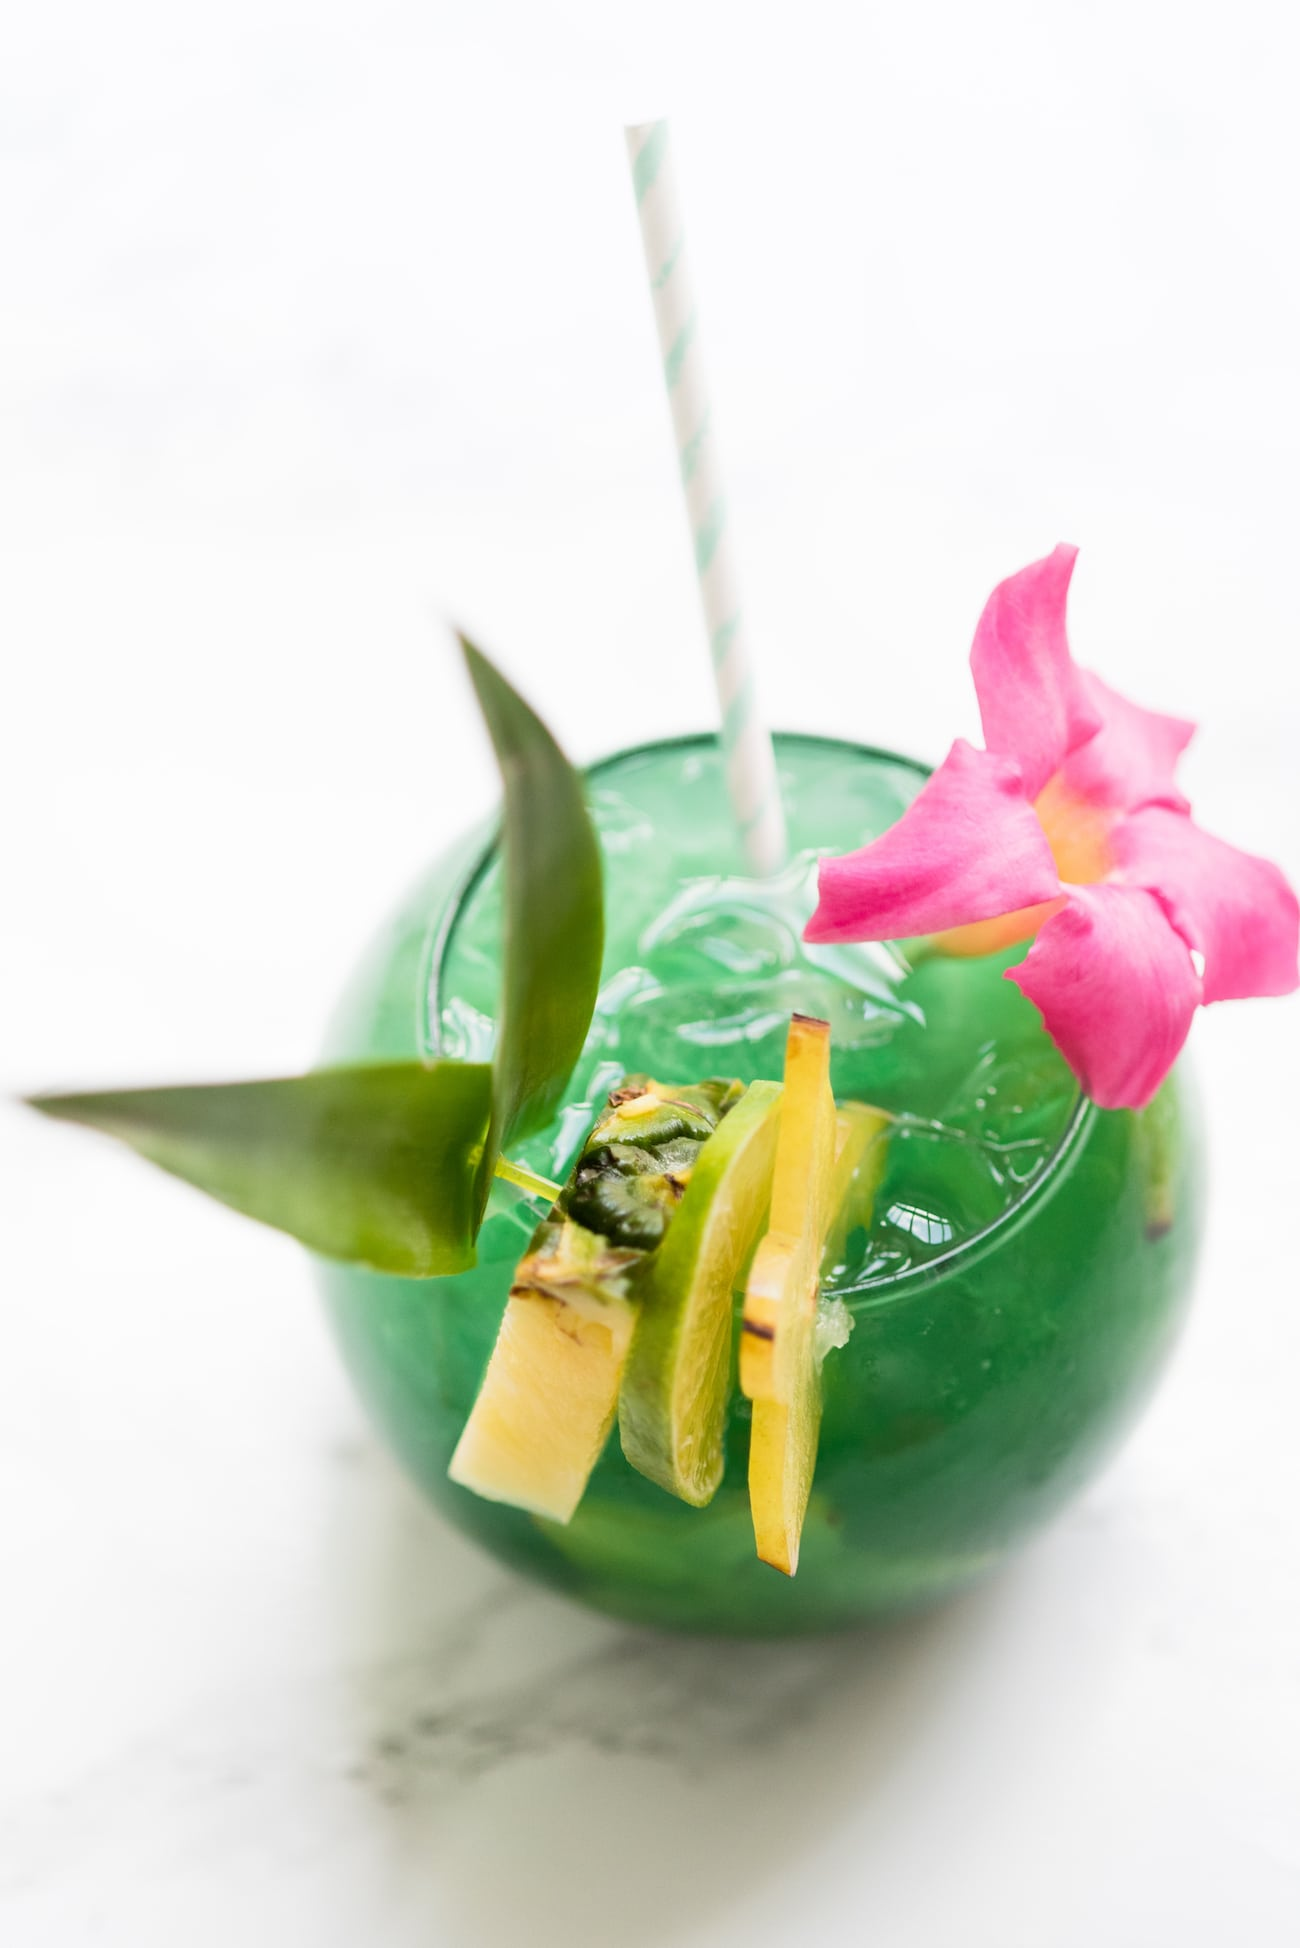 Mermaid Water FIsh Bowl Drinks | Summer cocktail recipes, summer party ideas, recipes and more from entertaining blog @cydconverse